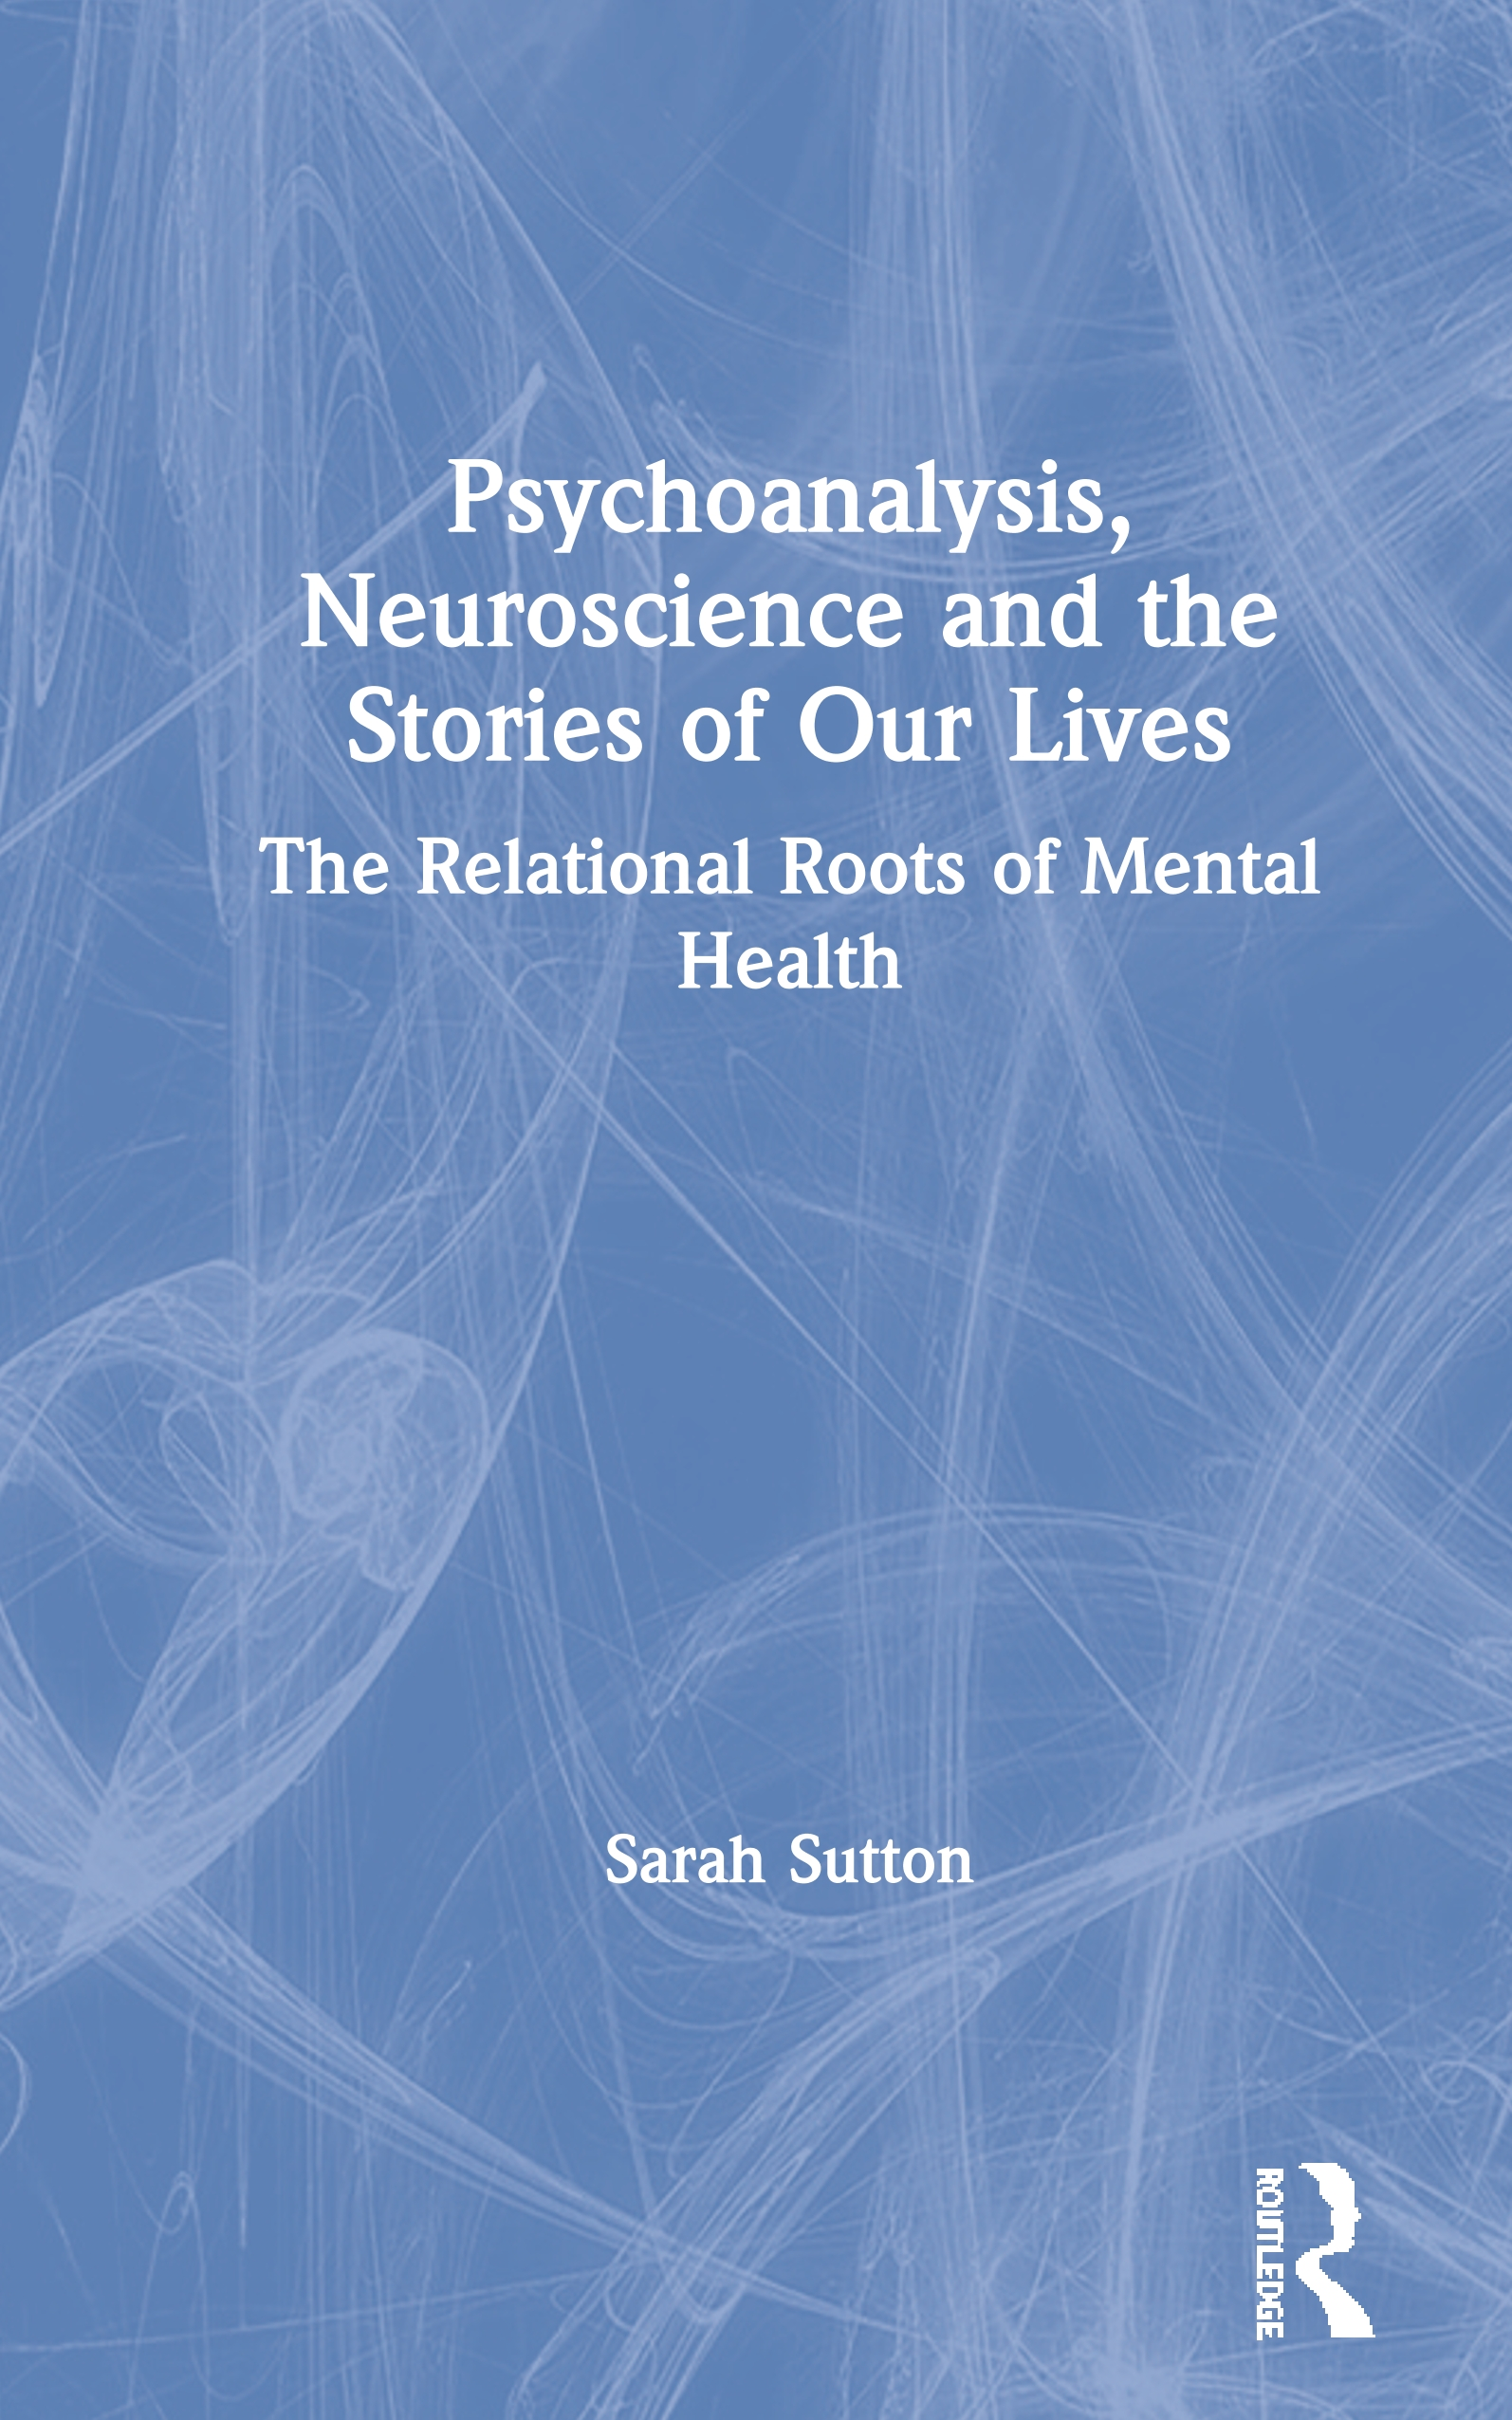 Psychoanalysis, Neuroscience and the Stories of Our Lives: The Relational Roots of Mental Health book cover